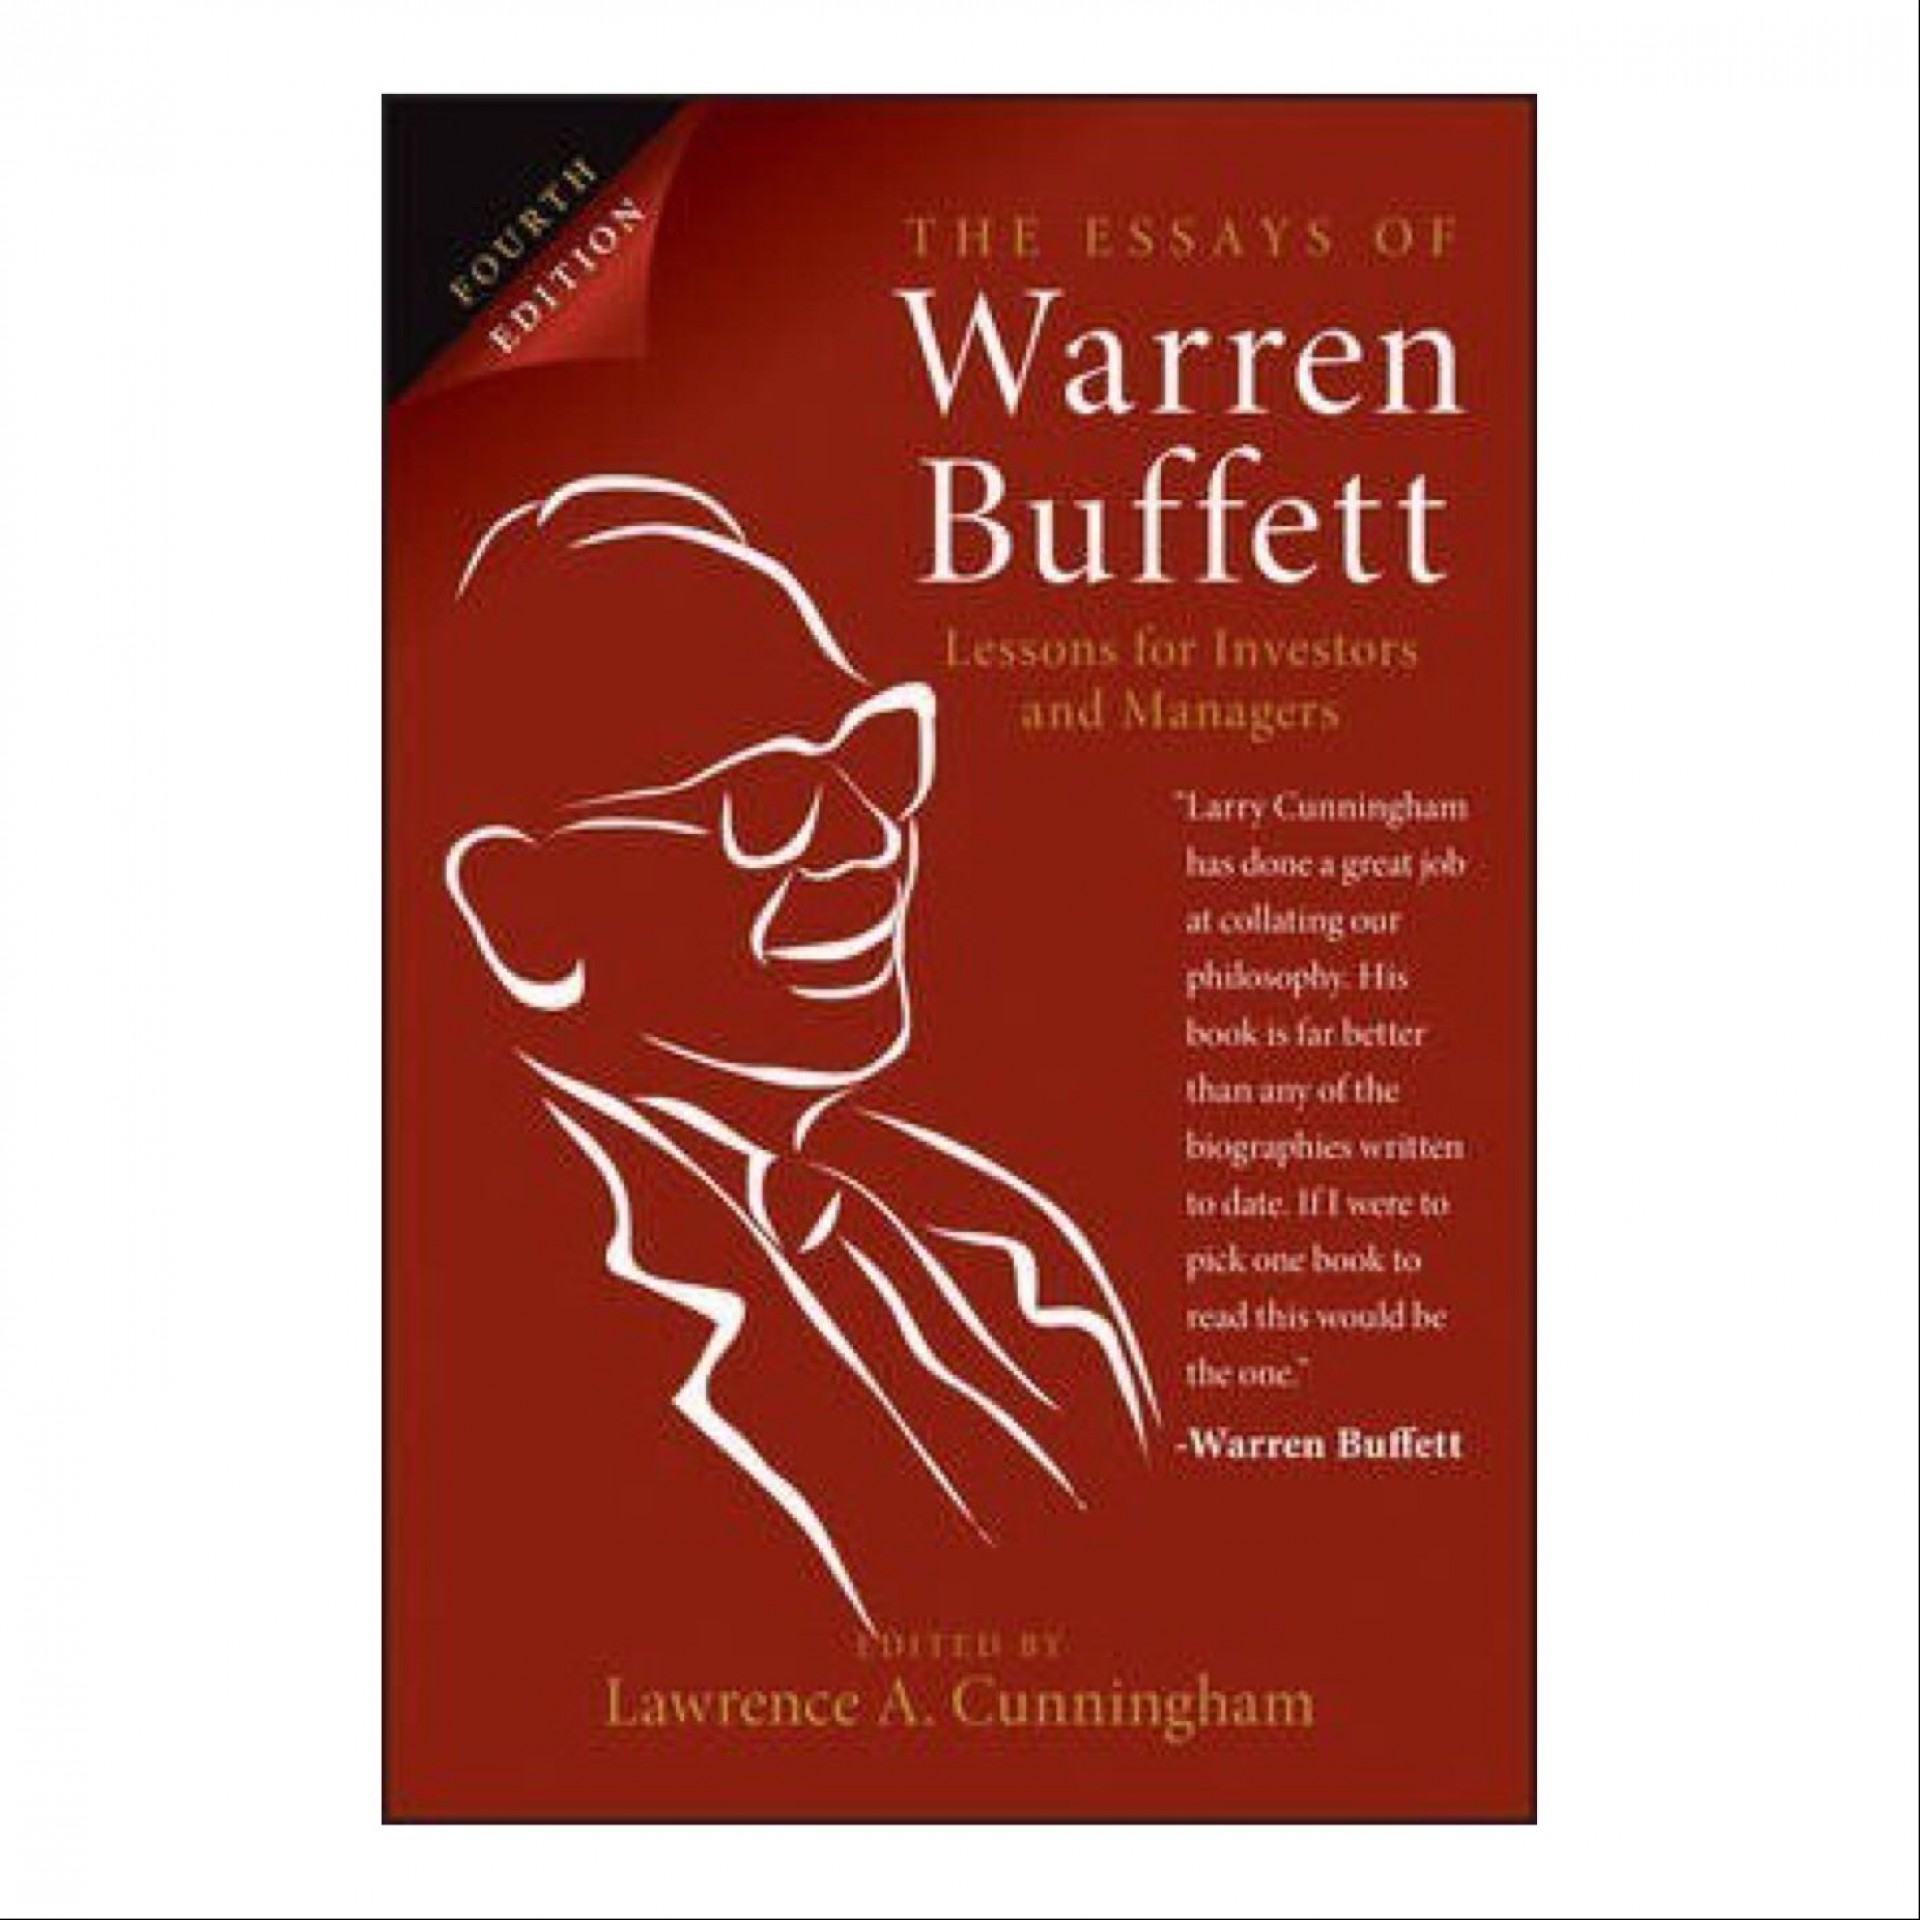 003 The Essays Of Warren Buffett Lessons For Investors And Managers 1524100501 7d4f23ba Essay Striking 4th Edition Free Pdf 1920